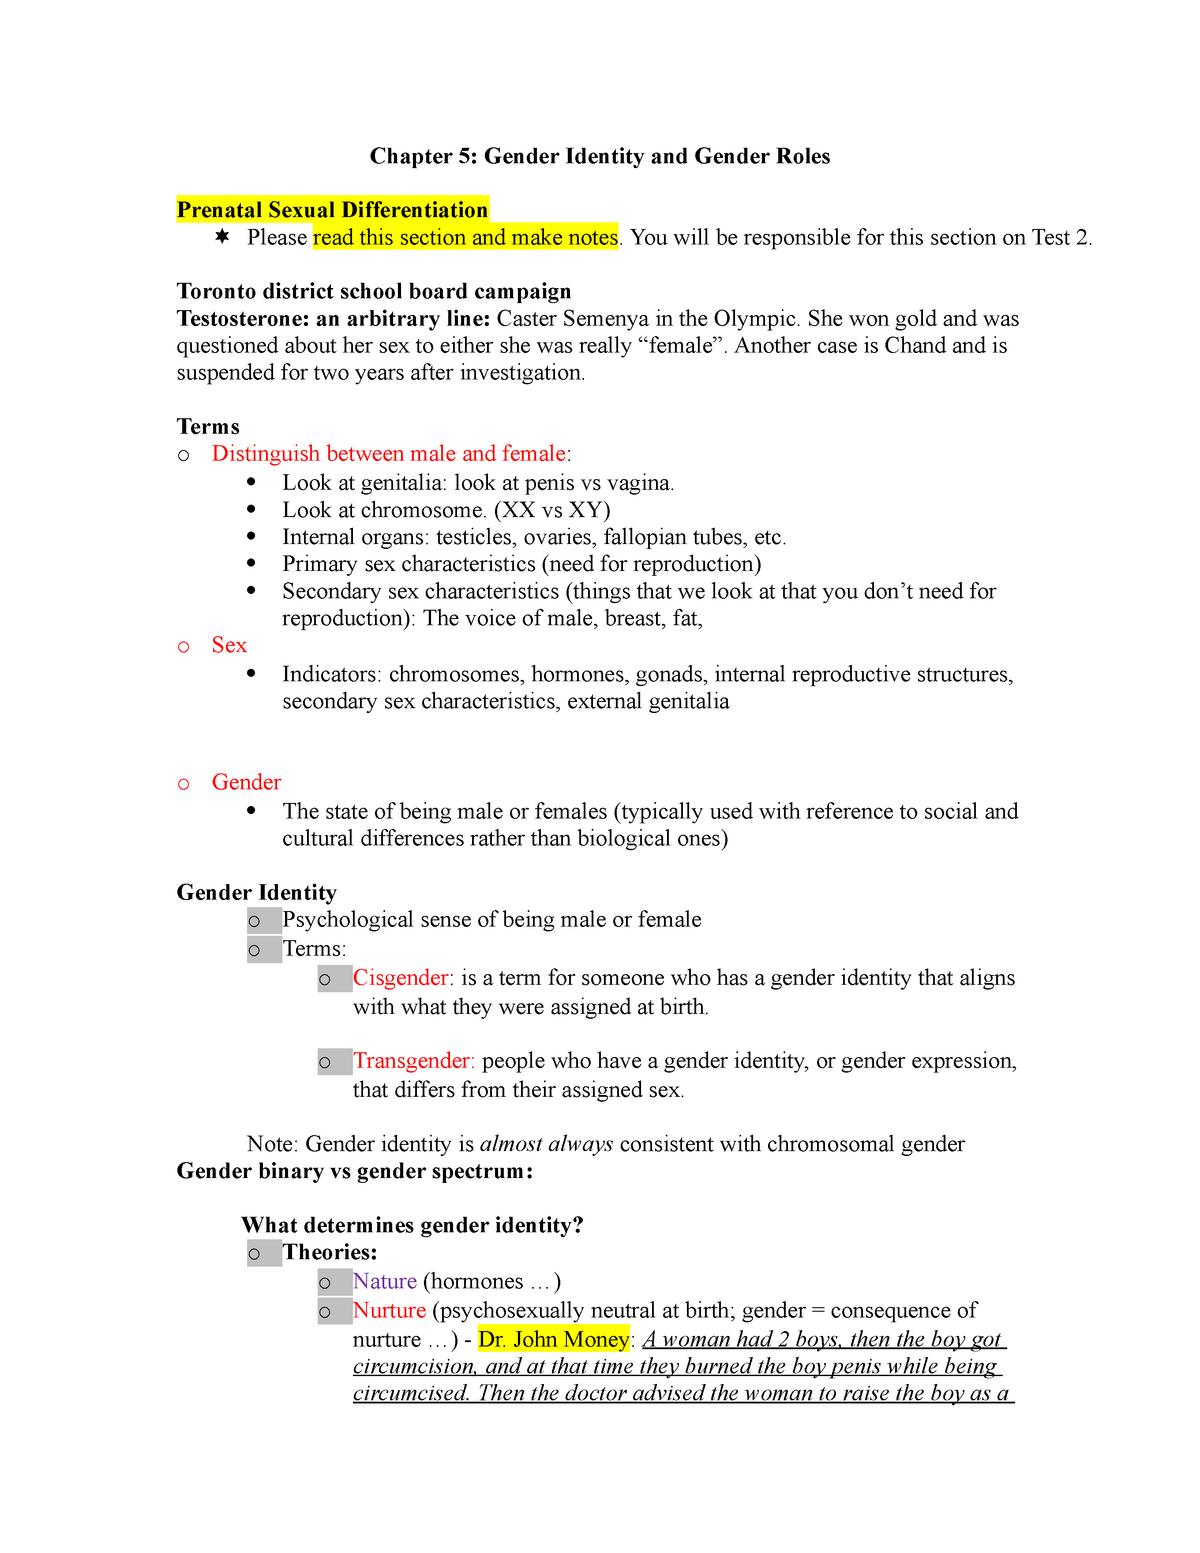 Lecture notes, lecture chapter 5 - Collab 2D03 - McMaster